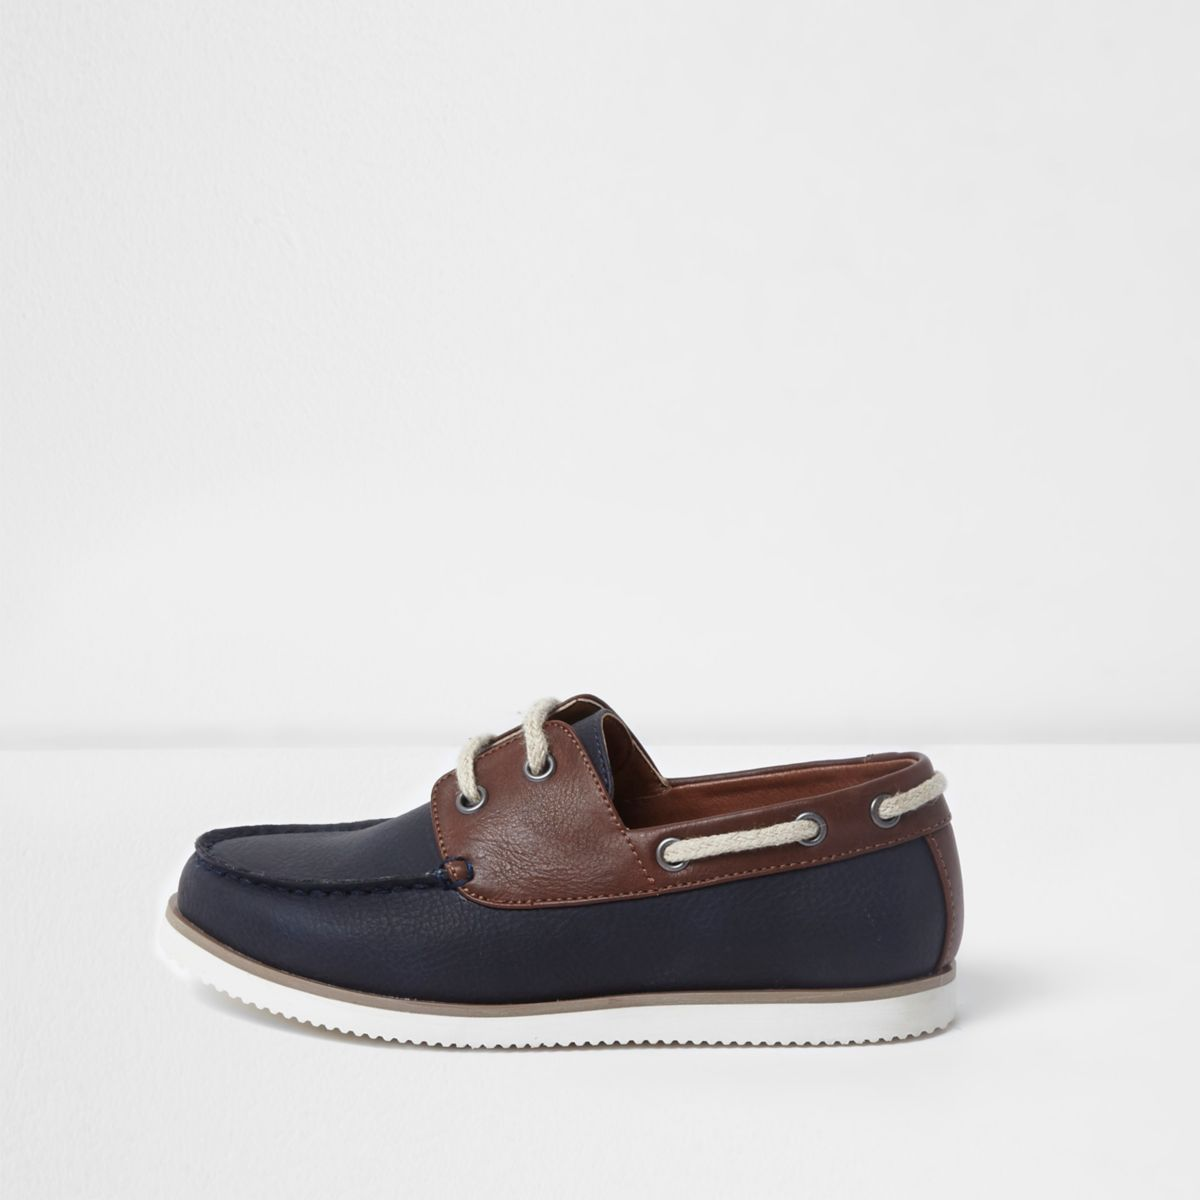 River Island Boat Shoes Womens